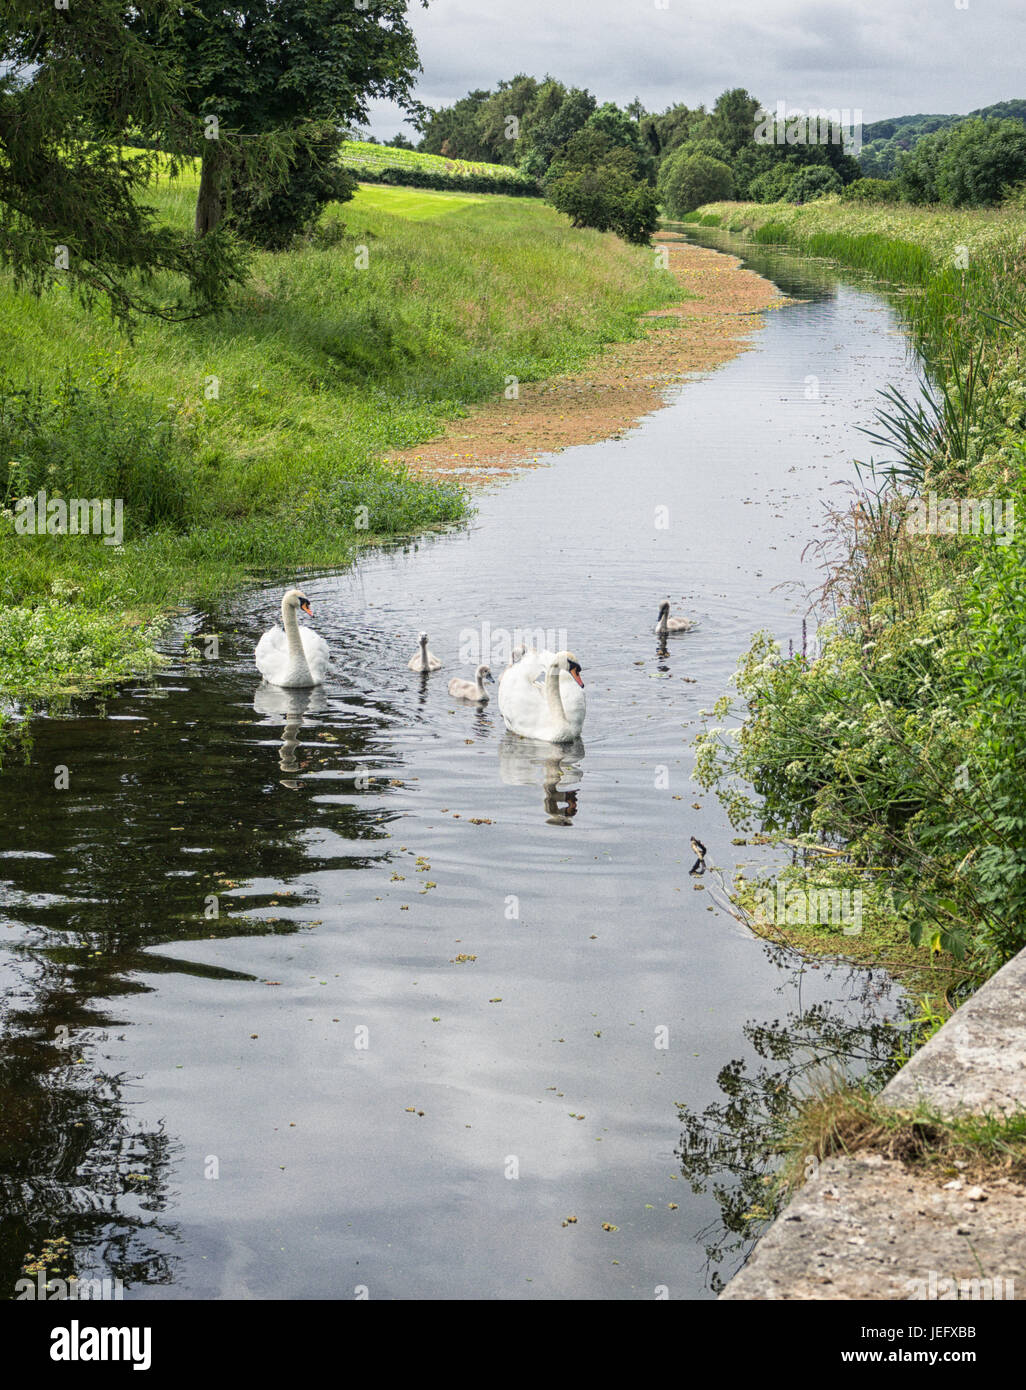 A canal and towpath - Stock Image